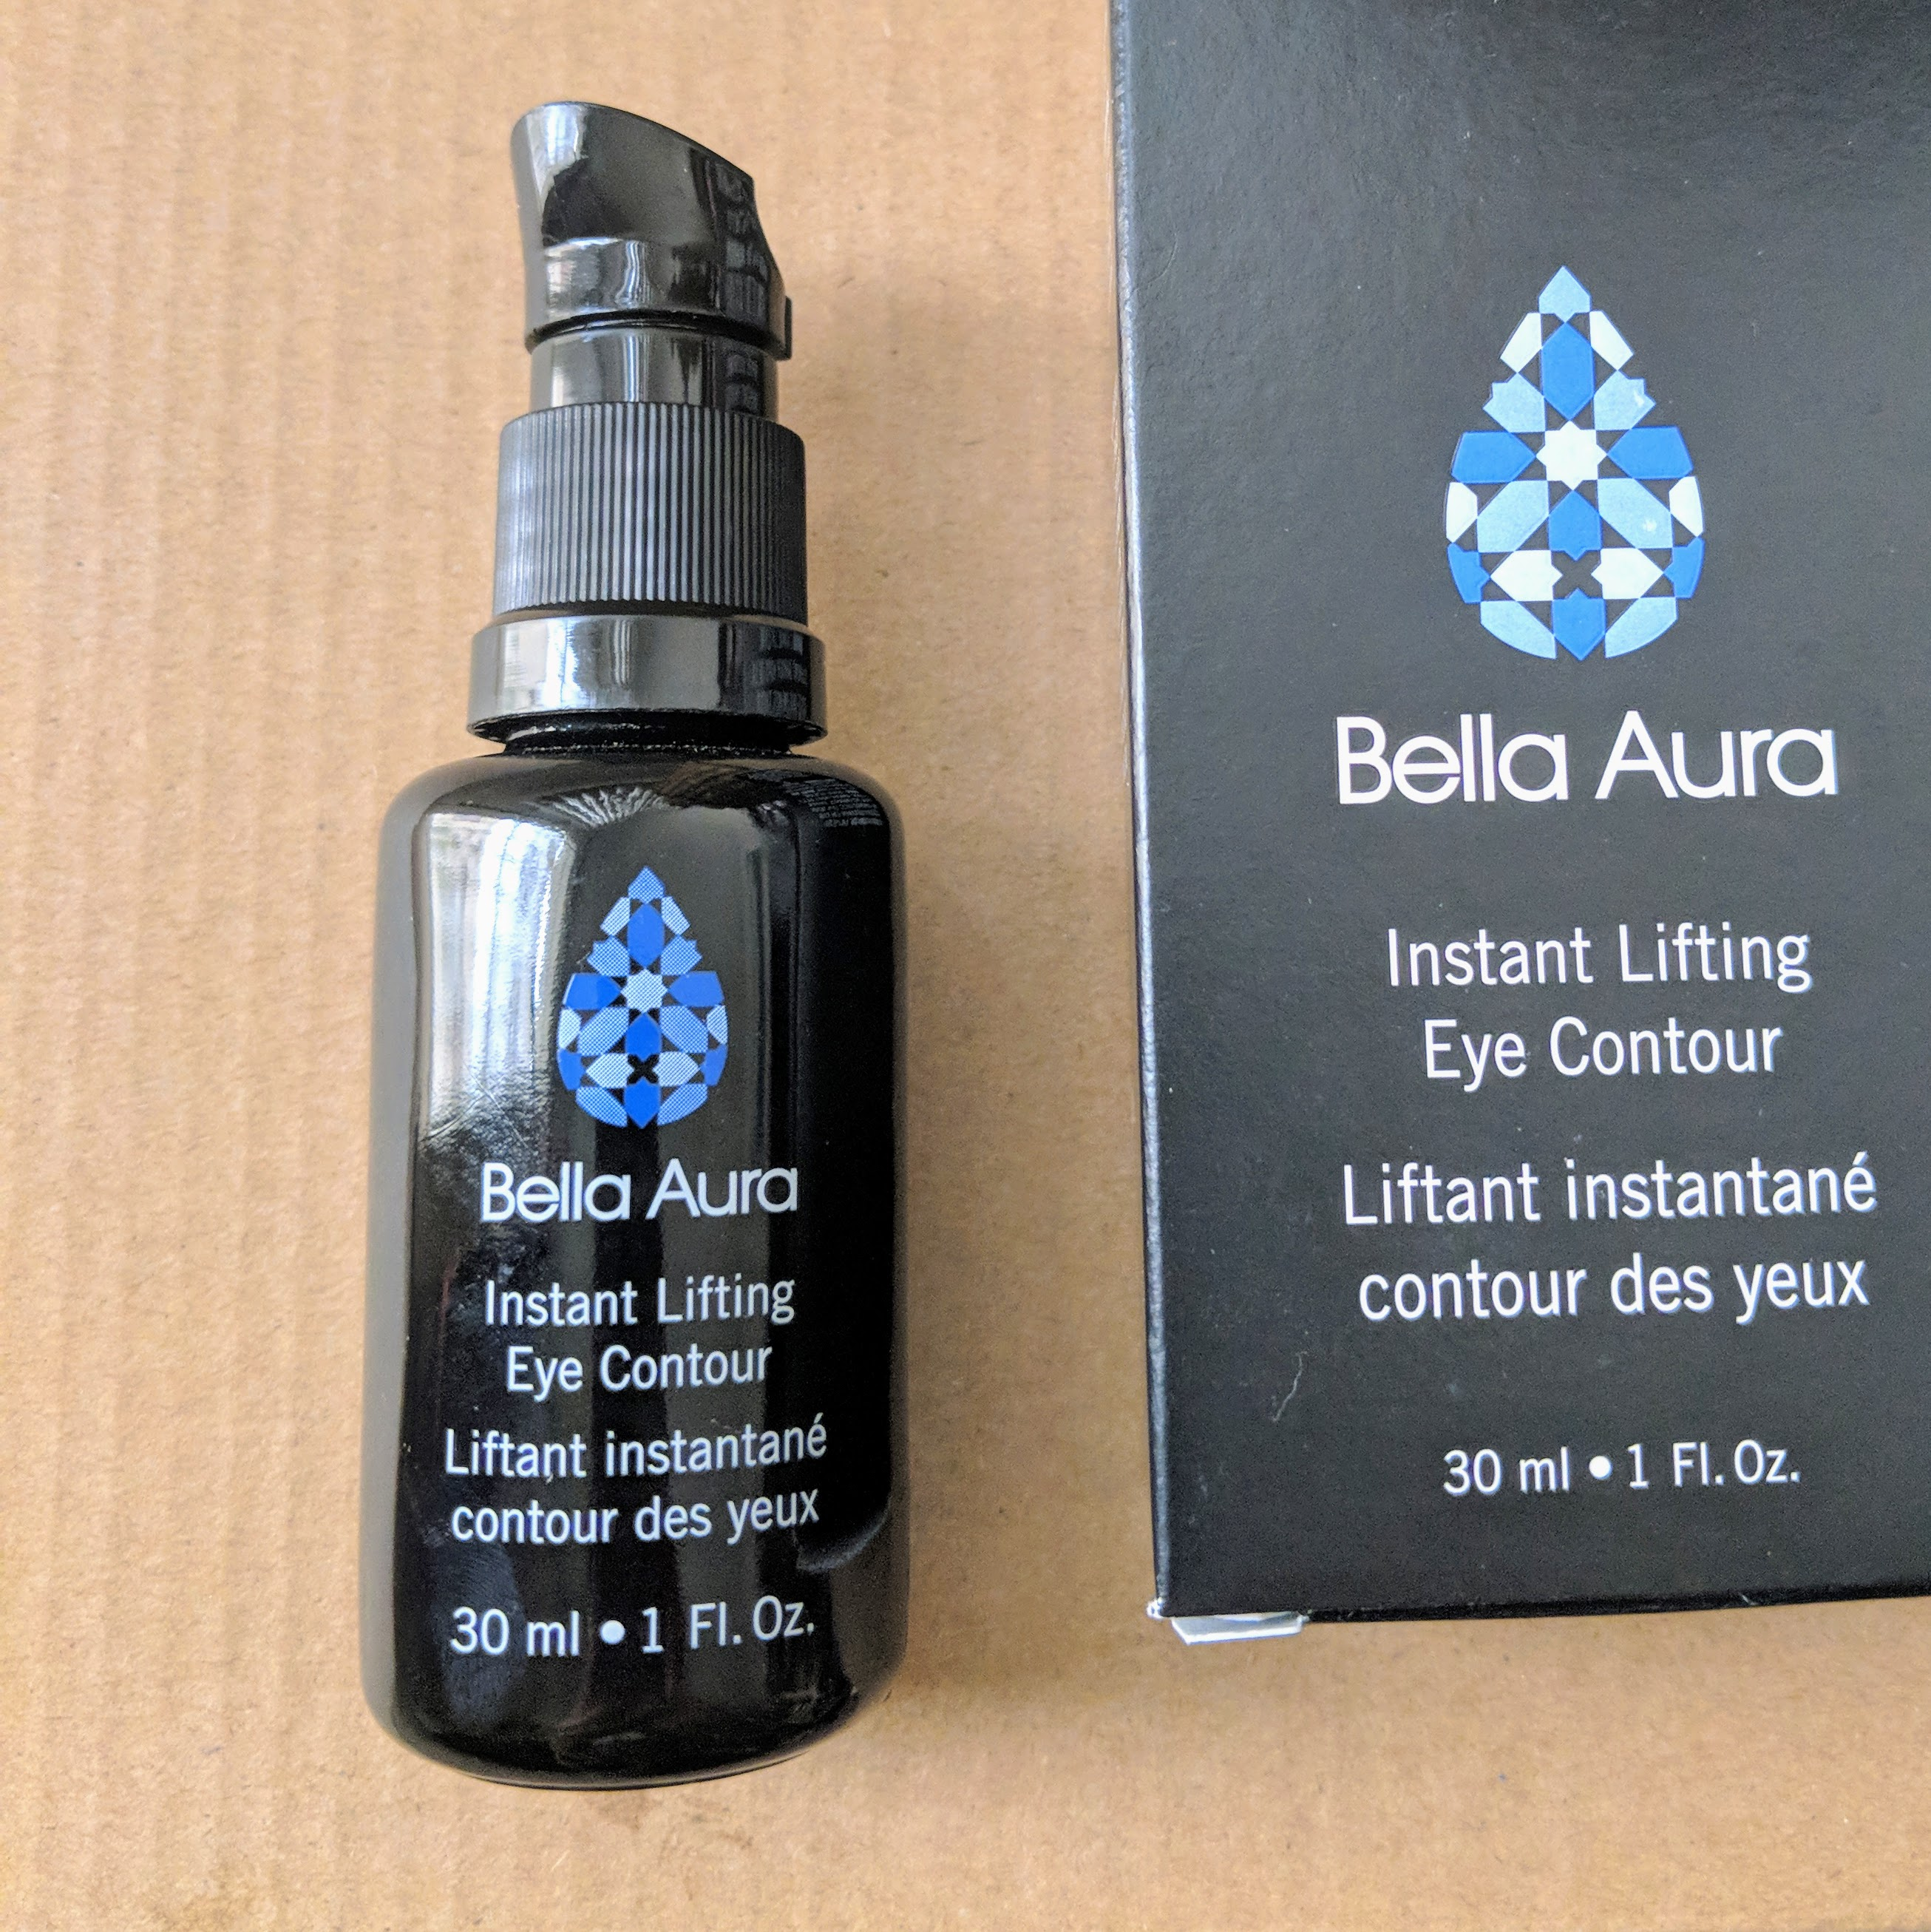 BELLA AURA INSTANT LIFTING EYE CONTOUR